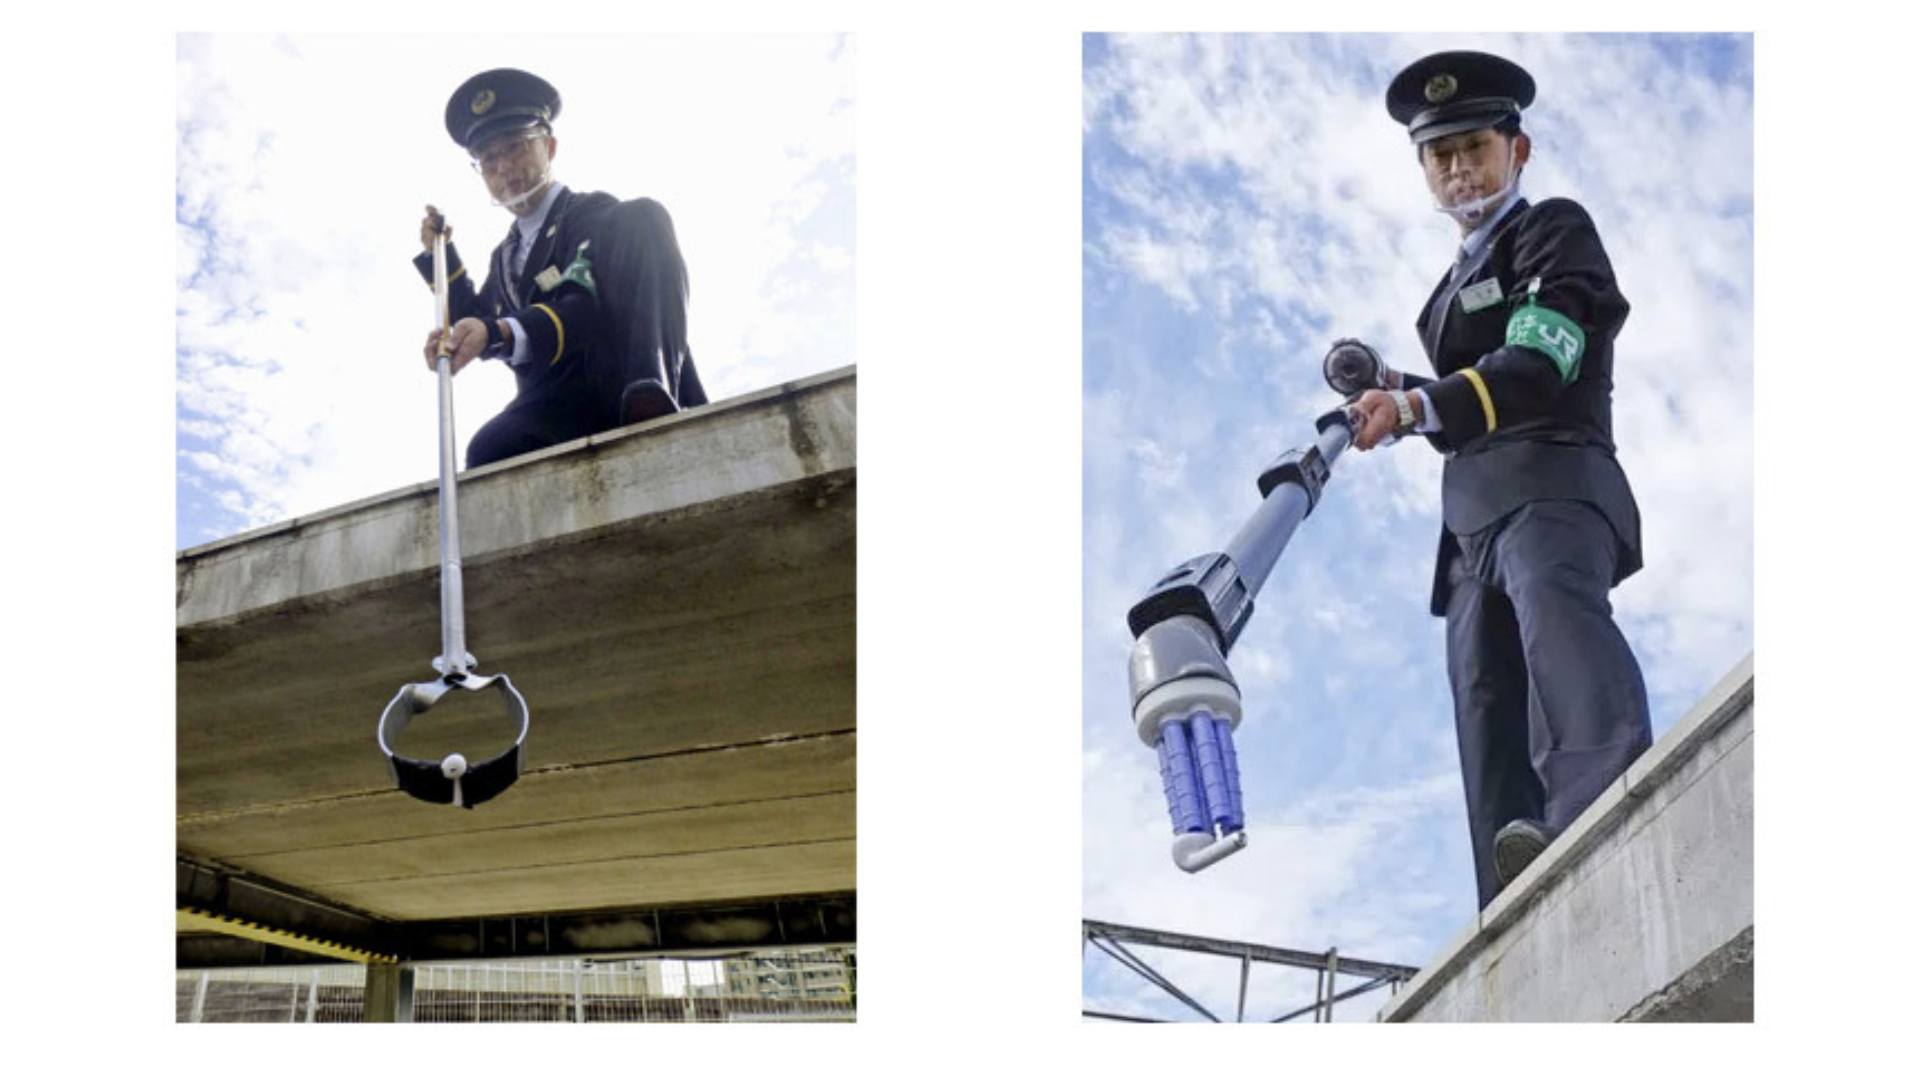 East Japan Railway creates AirPods capturing contraption